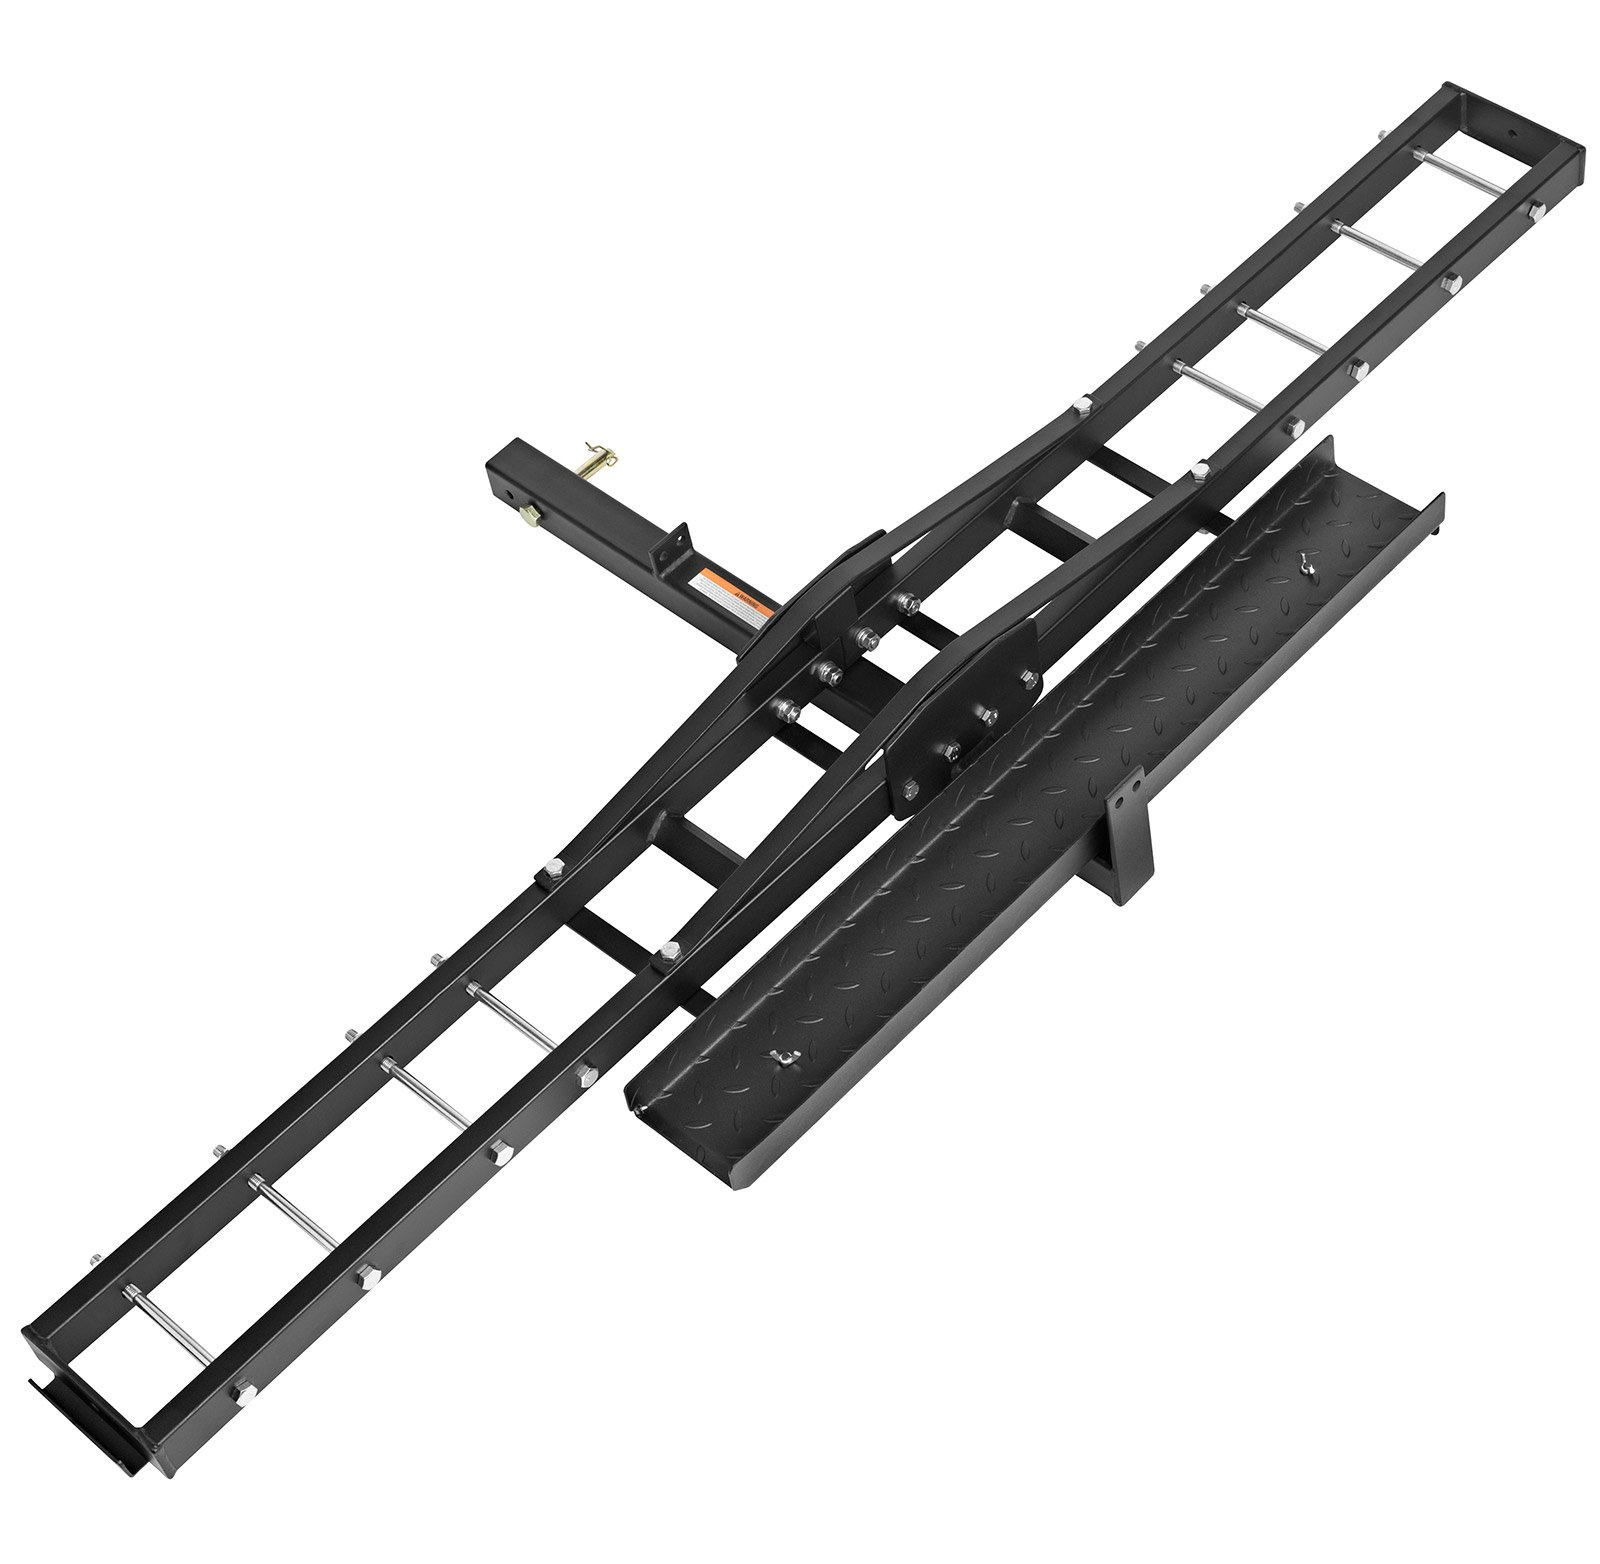 Direct Aftermarket Steel Motorcycle Scooter Dirt Bike Rack Carrier Hauler Hitch Mount Rack Ramp Anti Tilt Anti Wobble by Direct Aftermarket